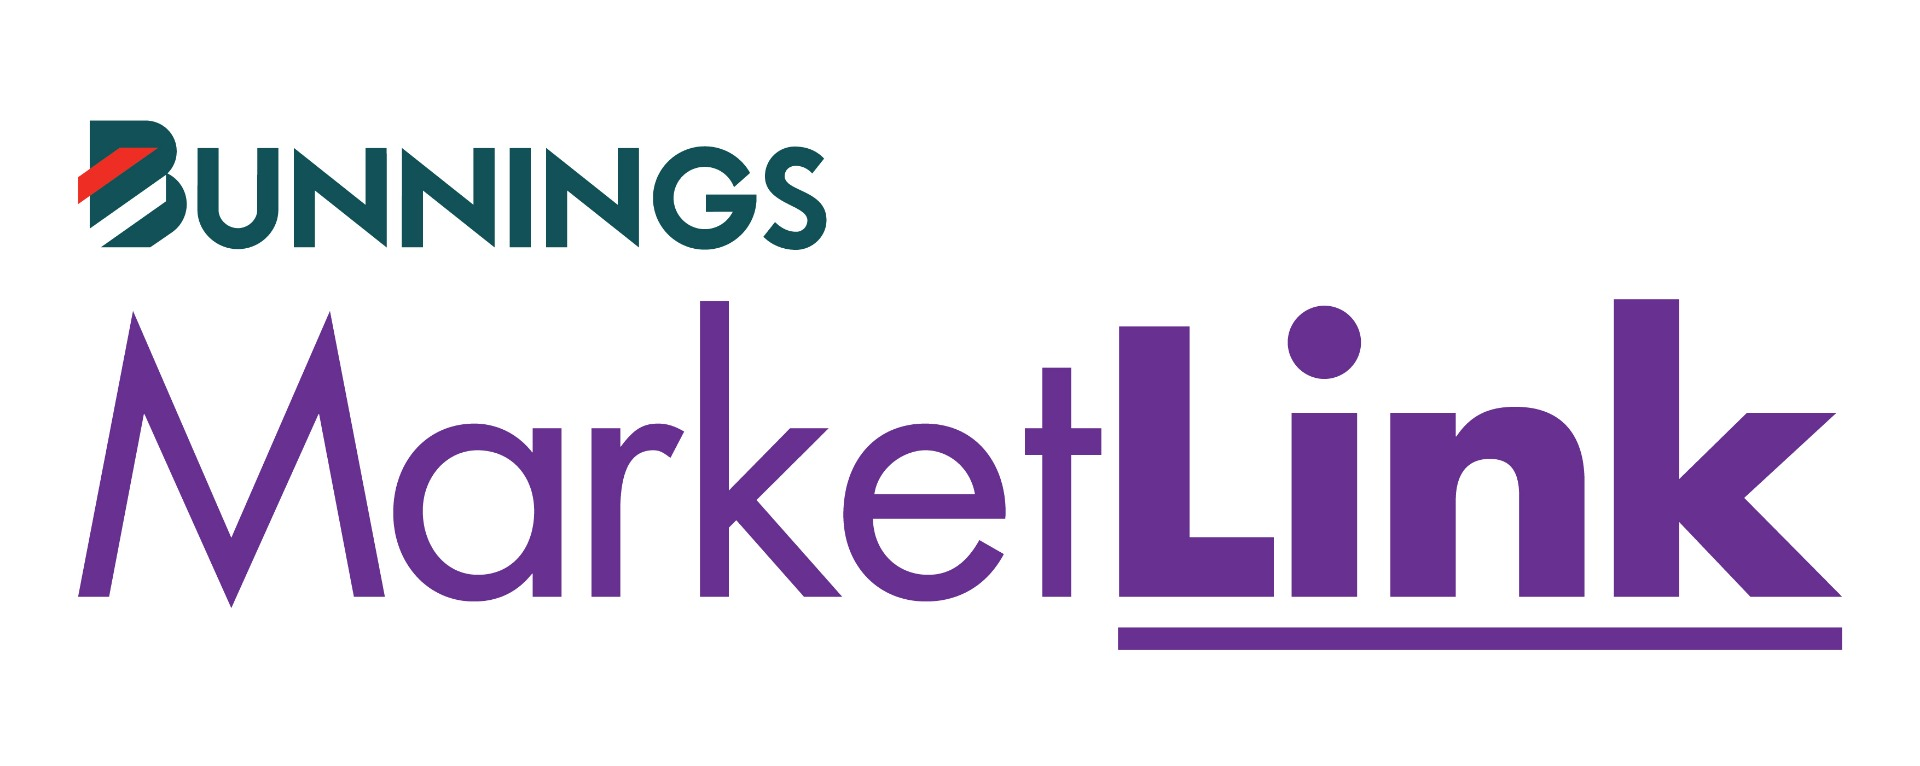 bunnings martketlink